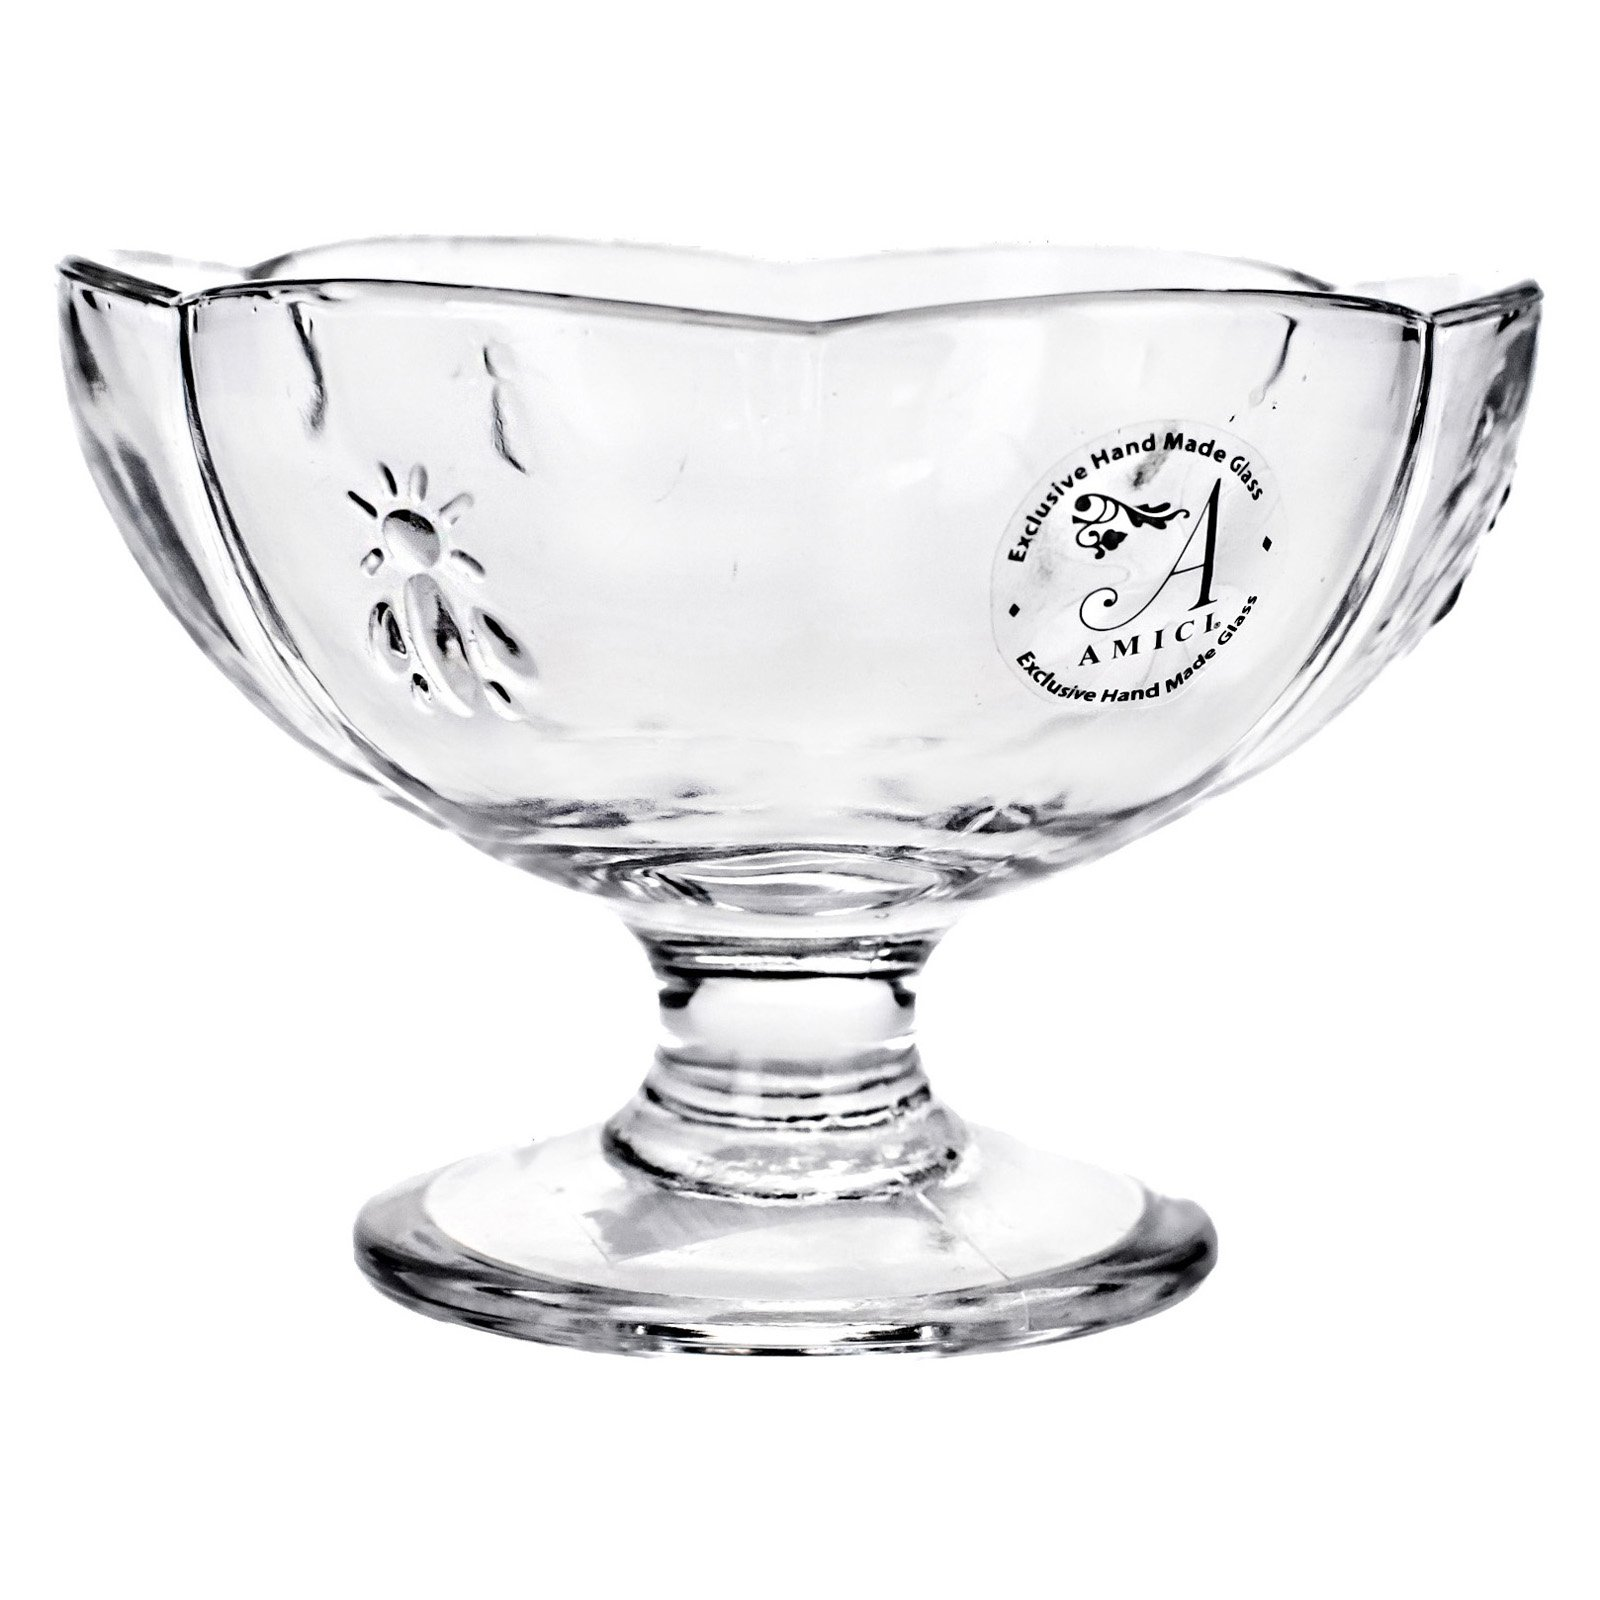 Global Amici Footed Dessert Bee Glass Bowl - Set of 6